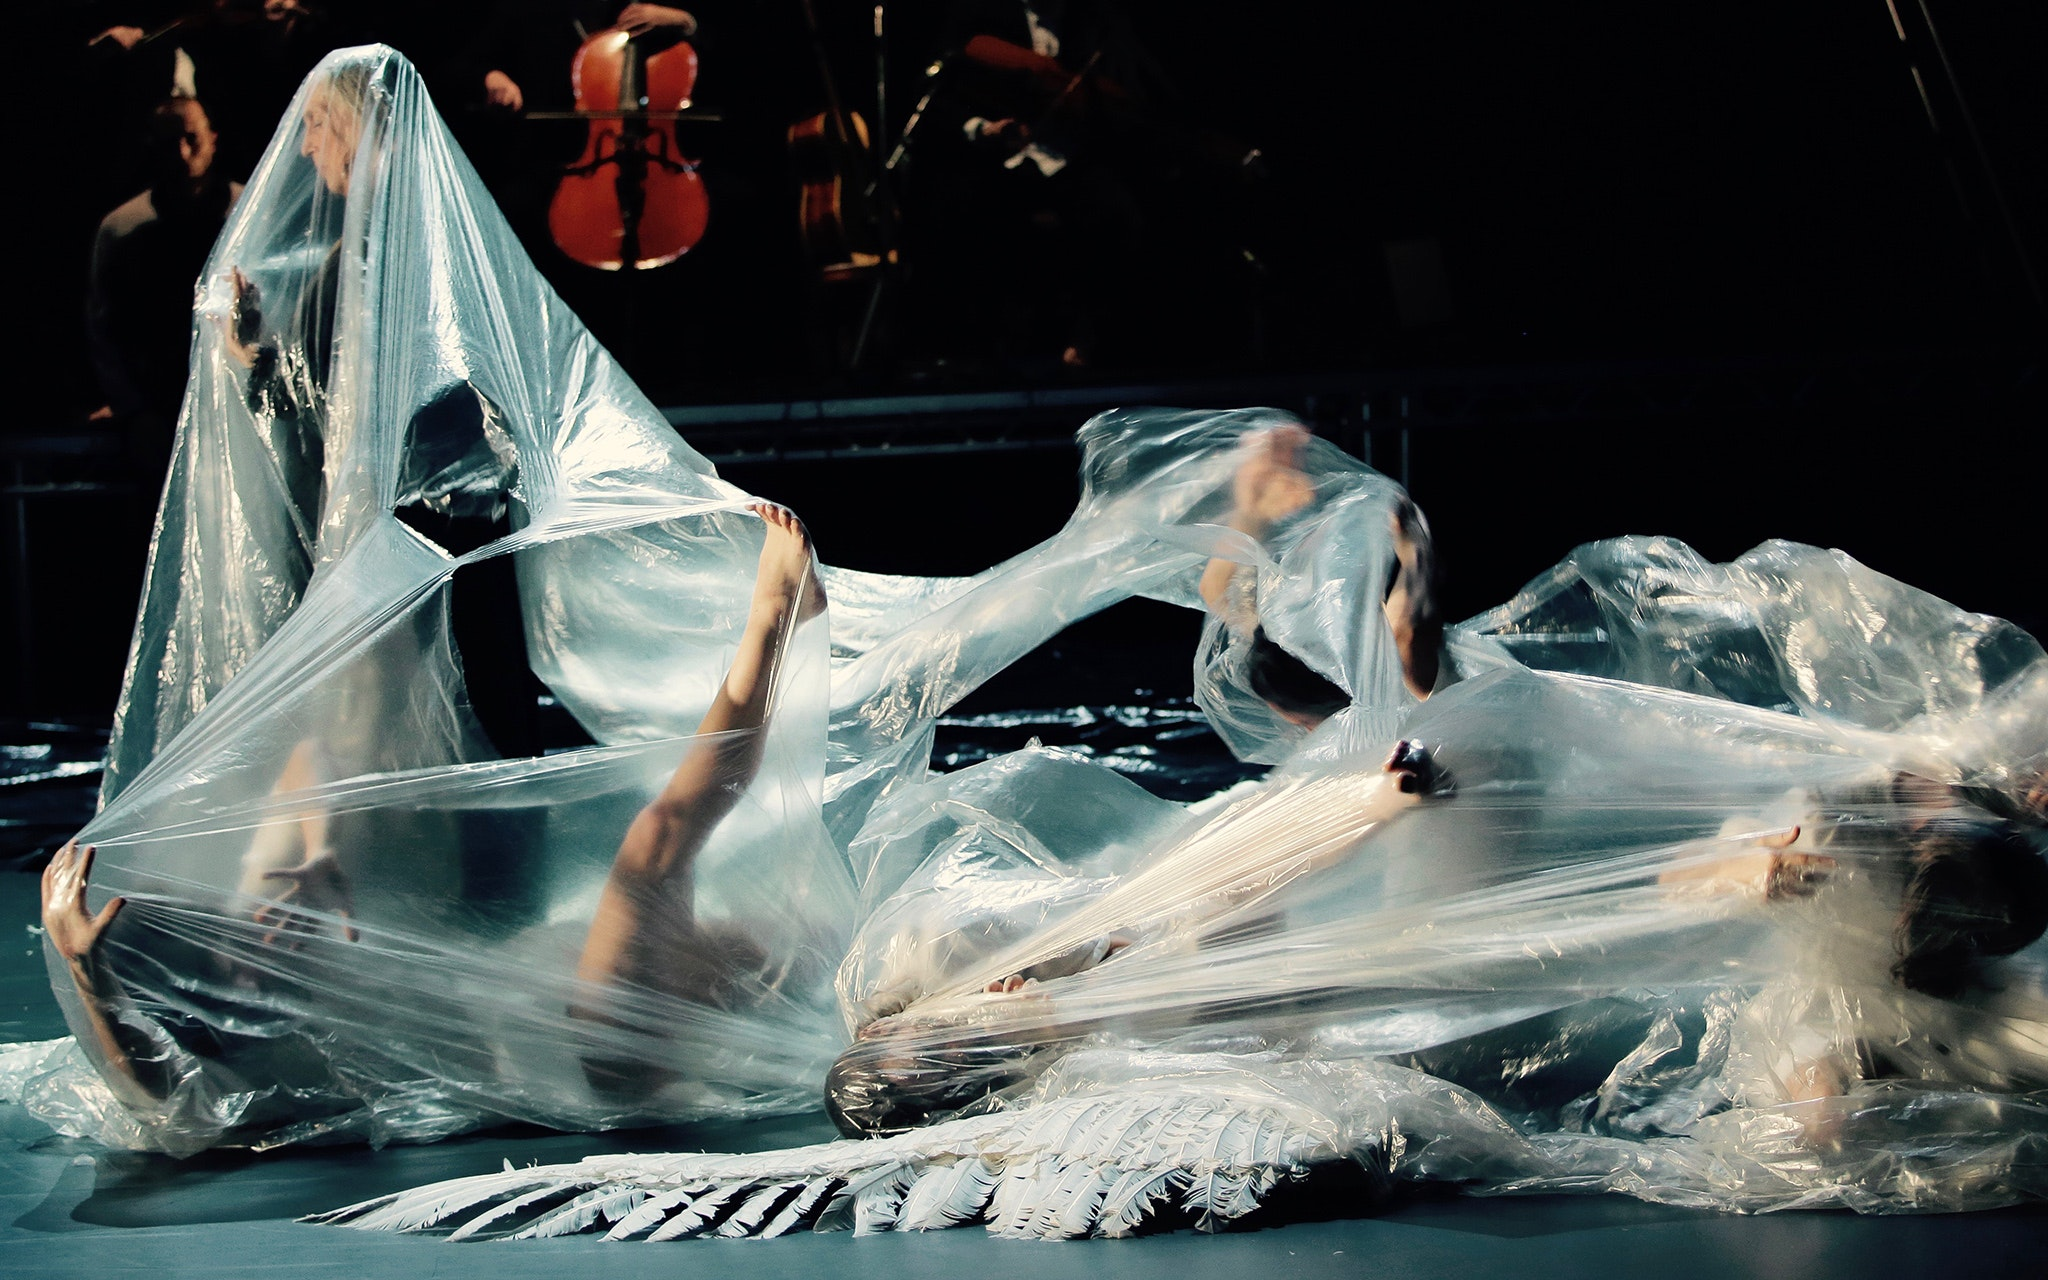 Dancers on the ground covered in plastic tarp.